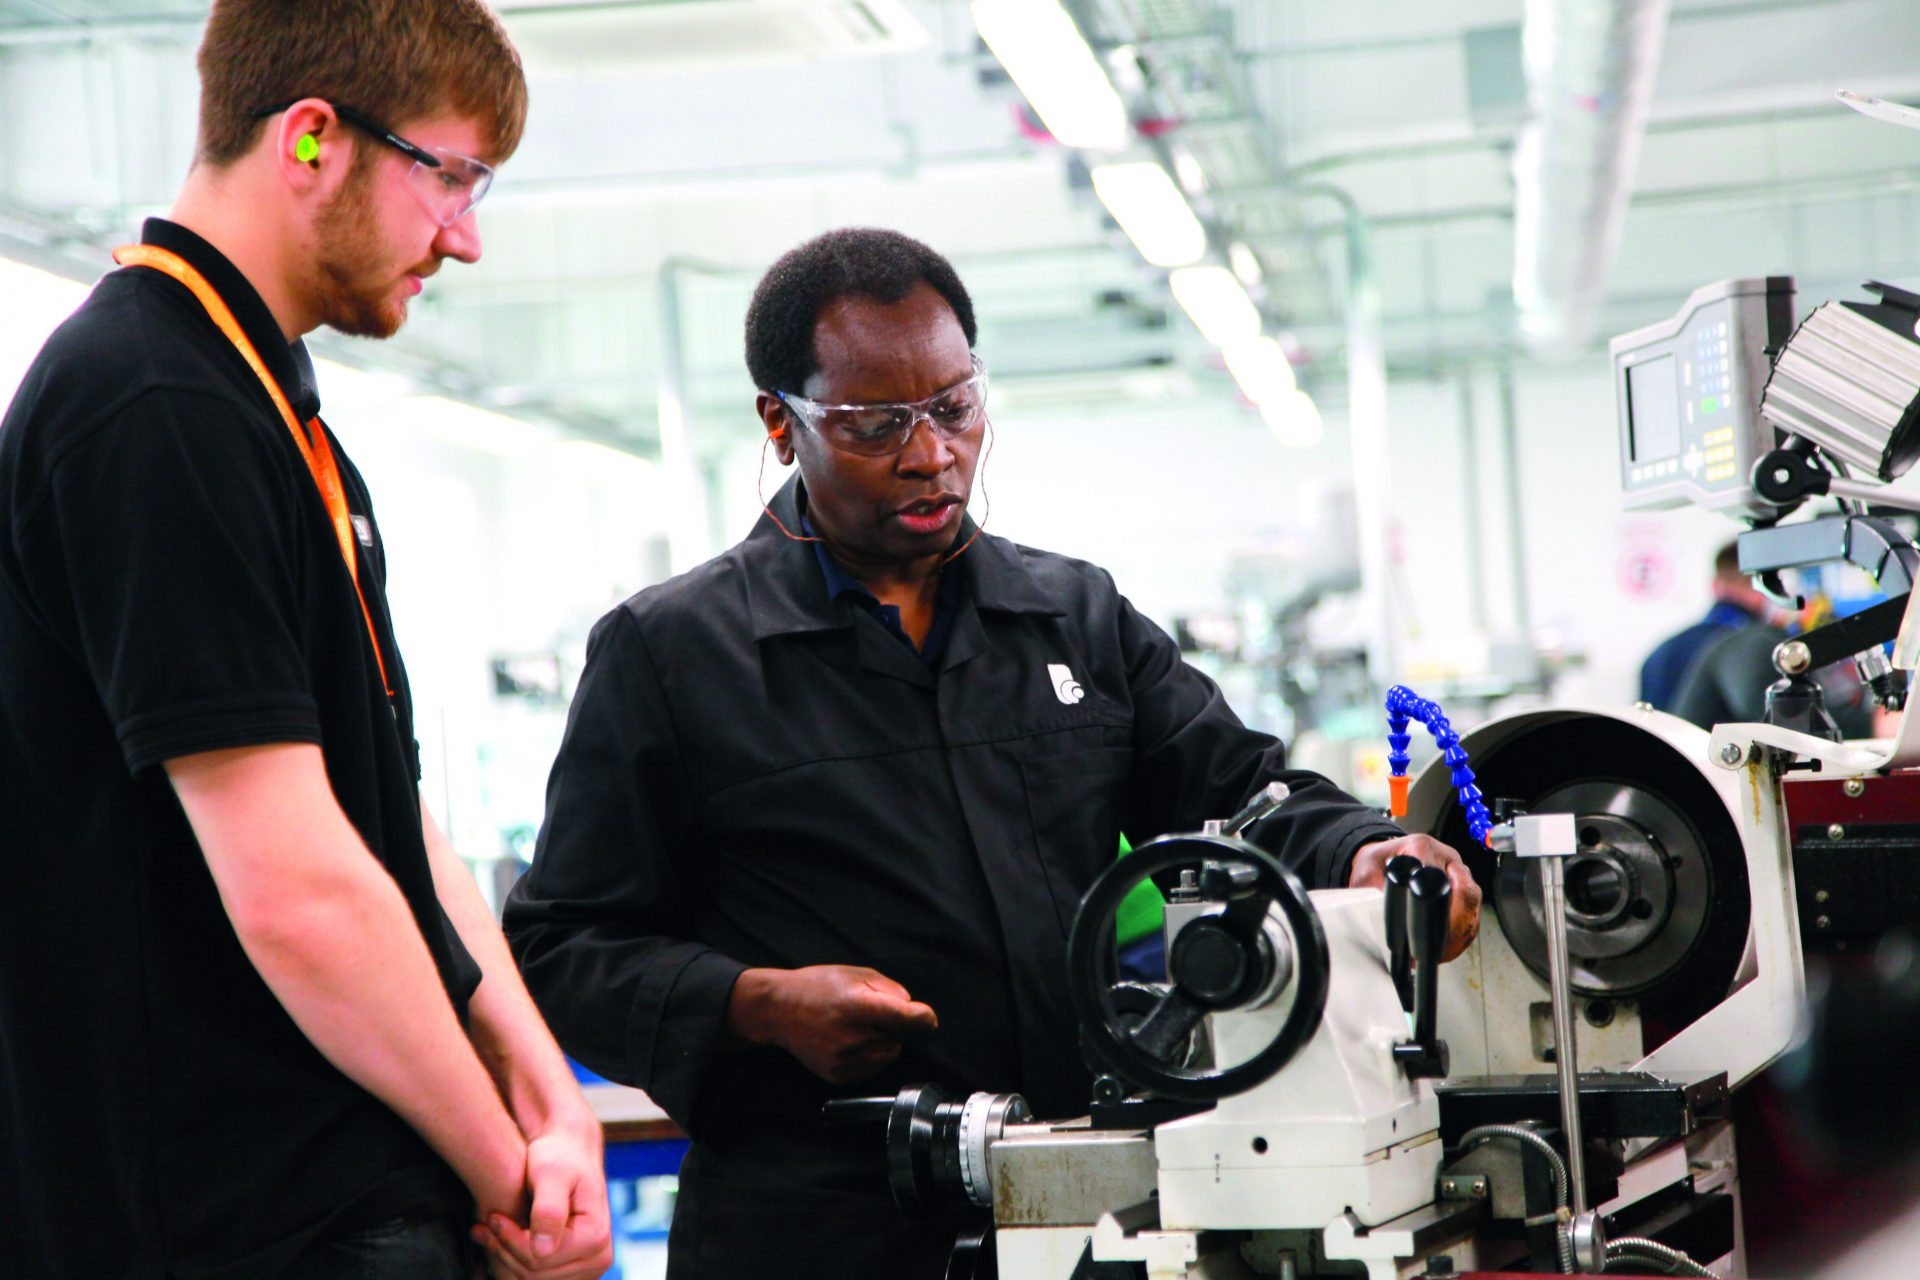 Apprenticeships at Leeds City College